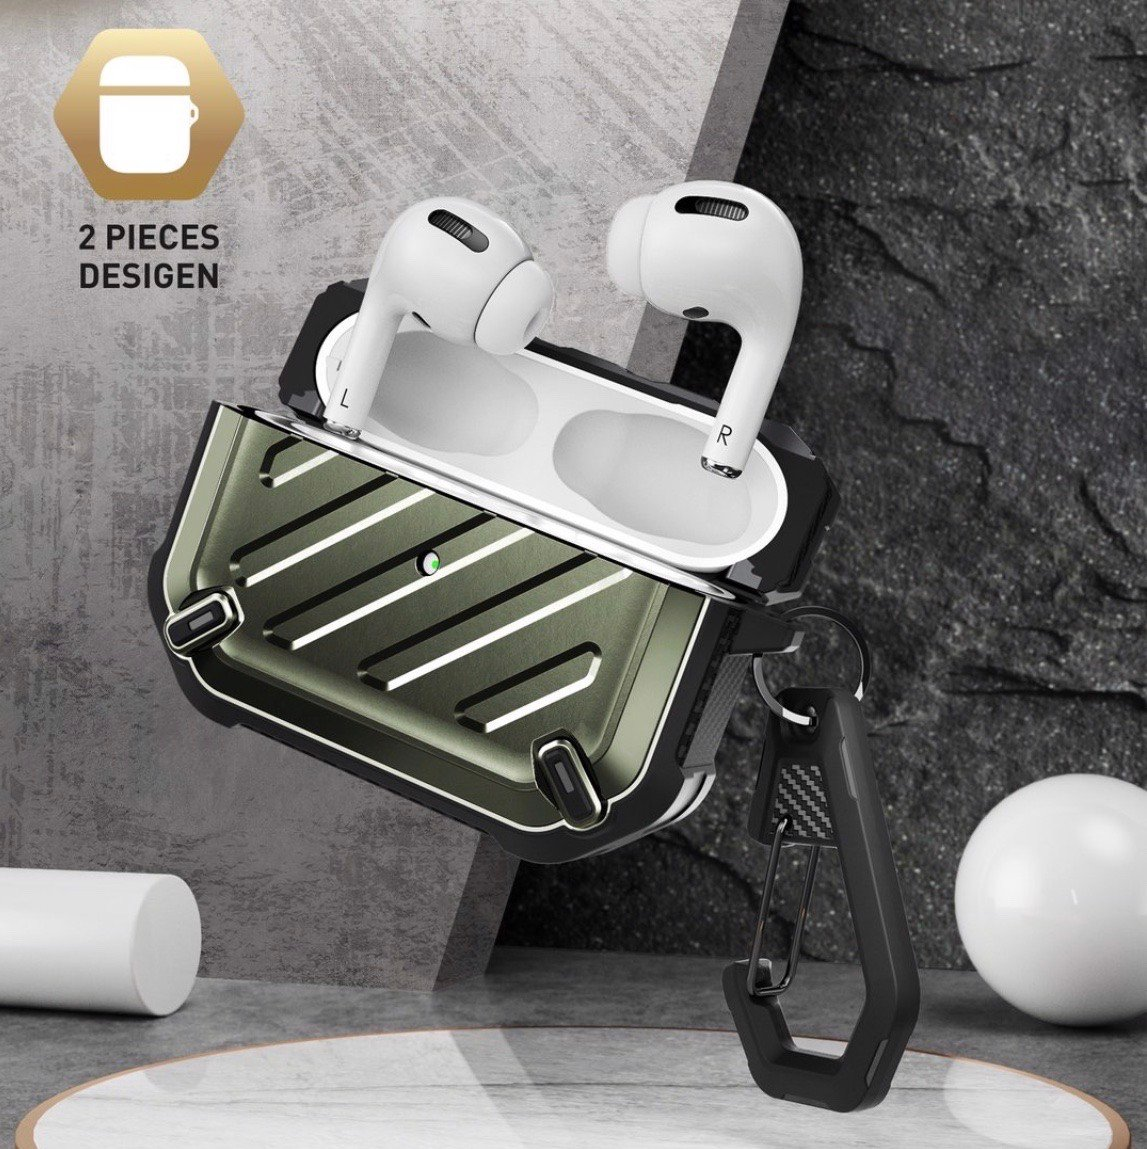 Ốp chống sốc Supcase cho tai nghe Airpods pro